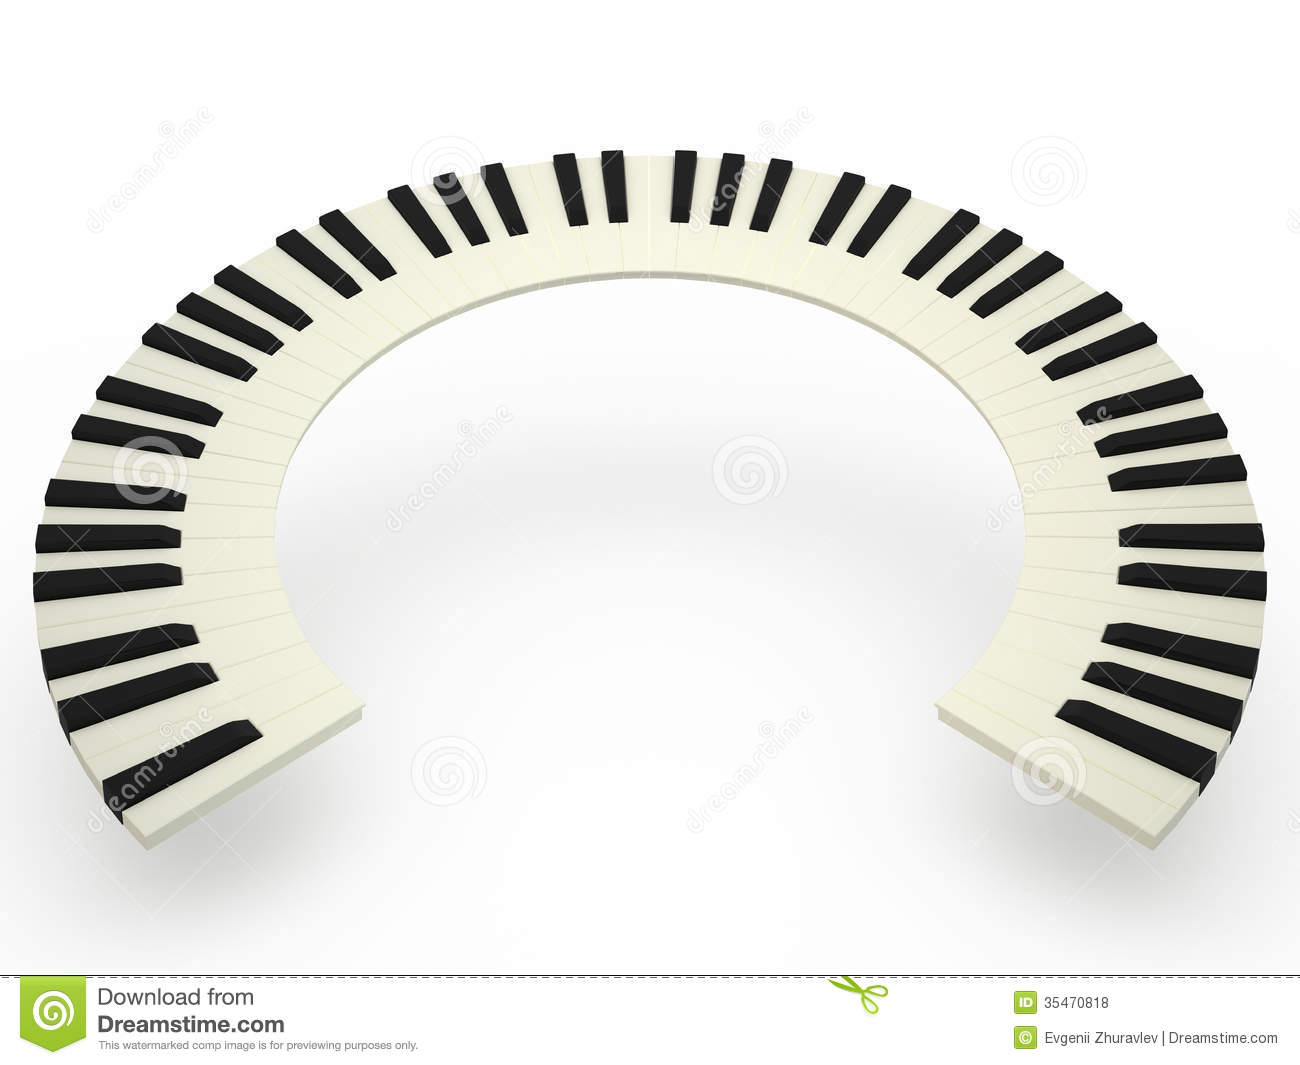 Piano clipart curved Illustrations Curving Curved Stock piano